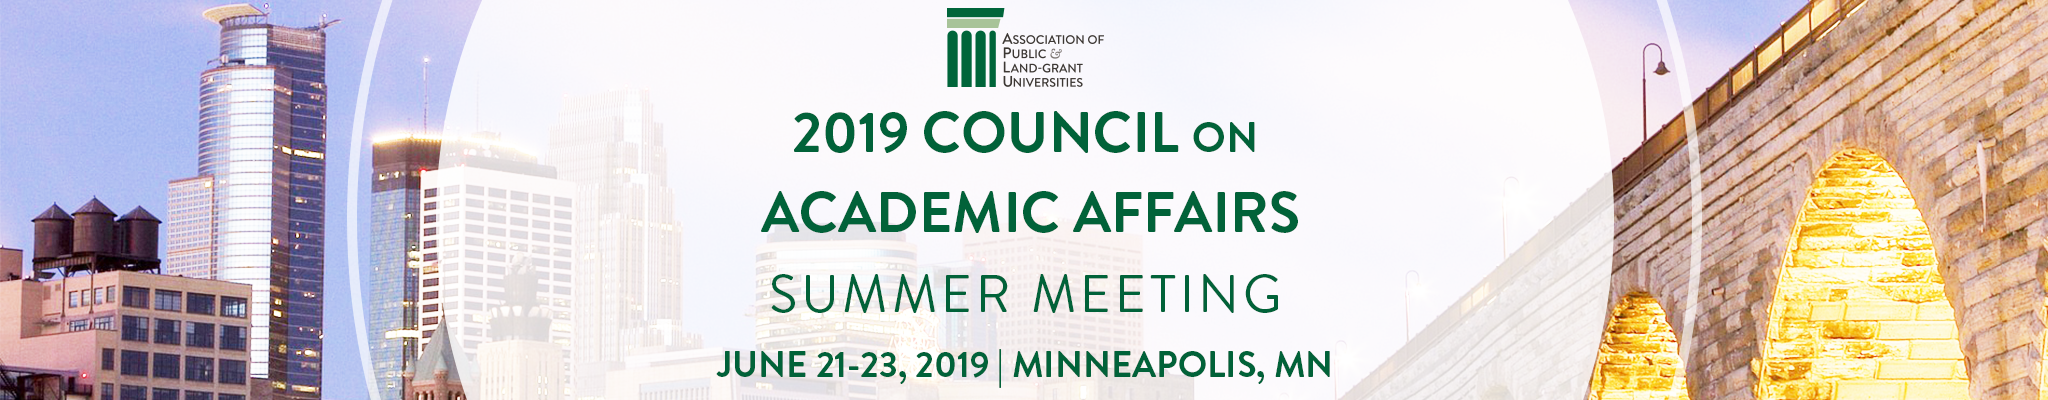 2019 Council of Academic Affairs Summer Meeting